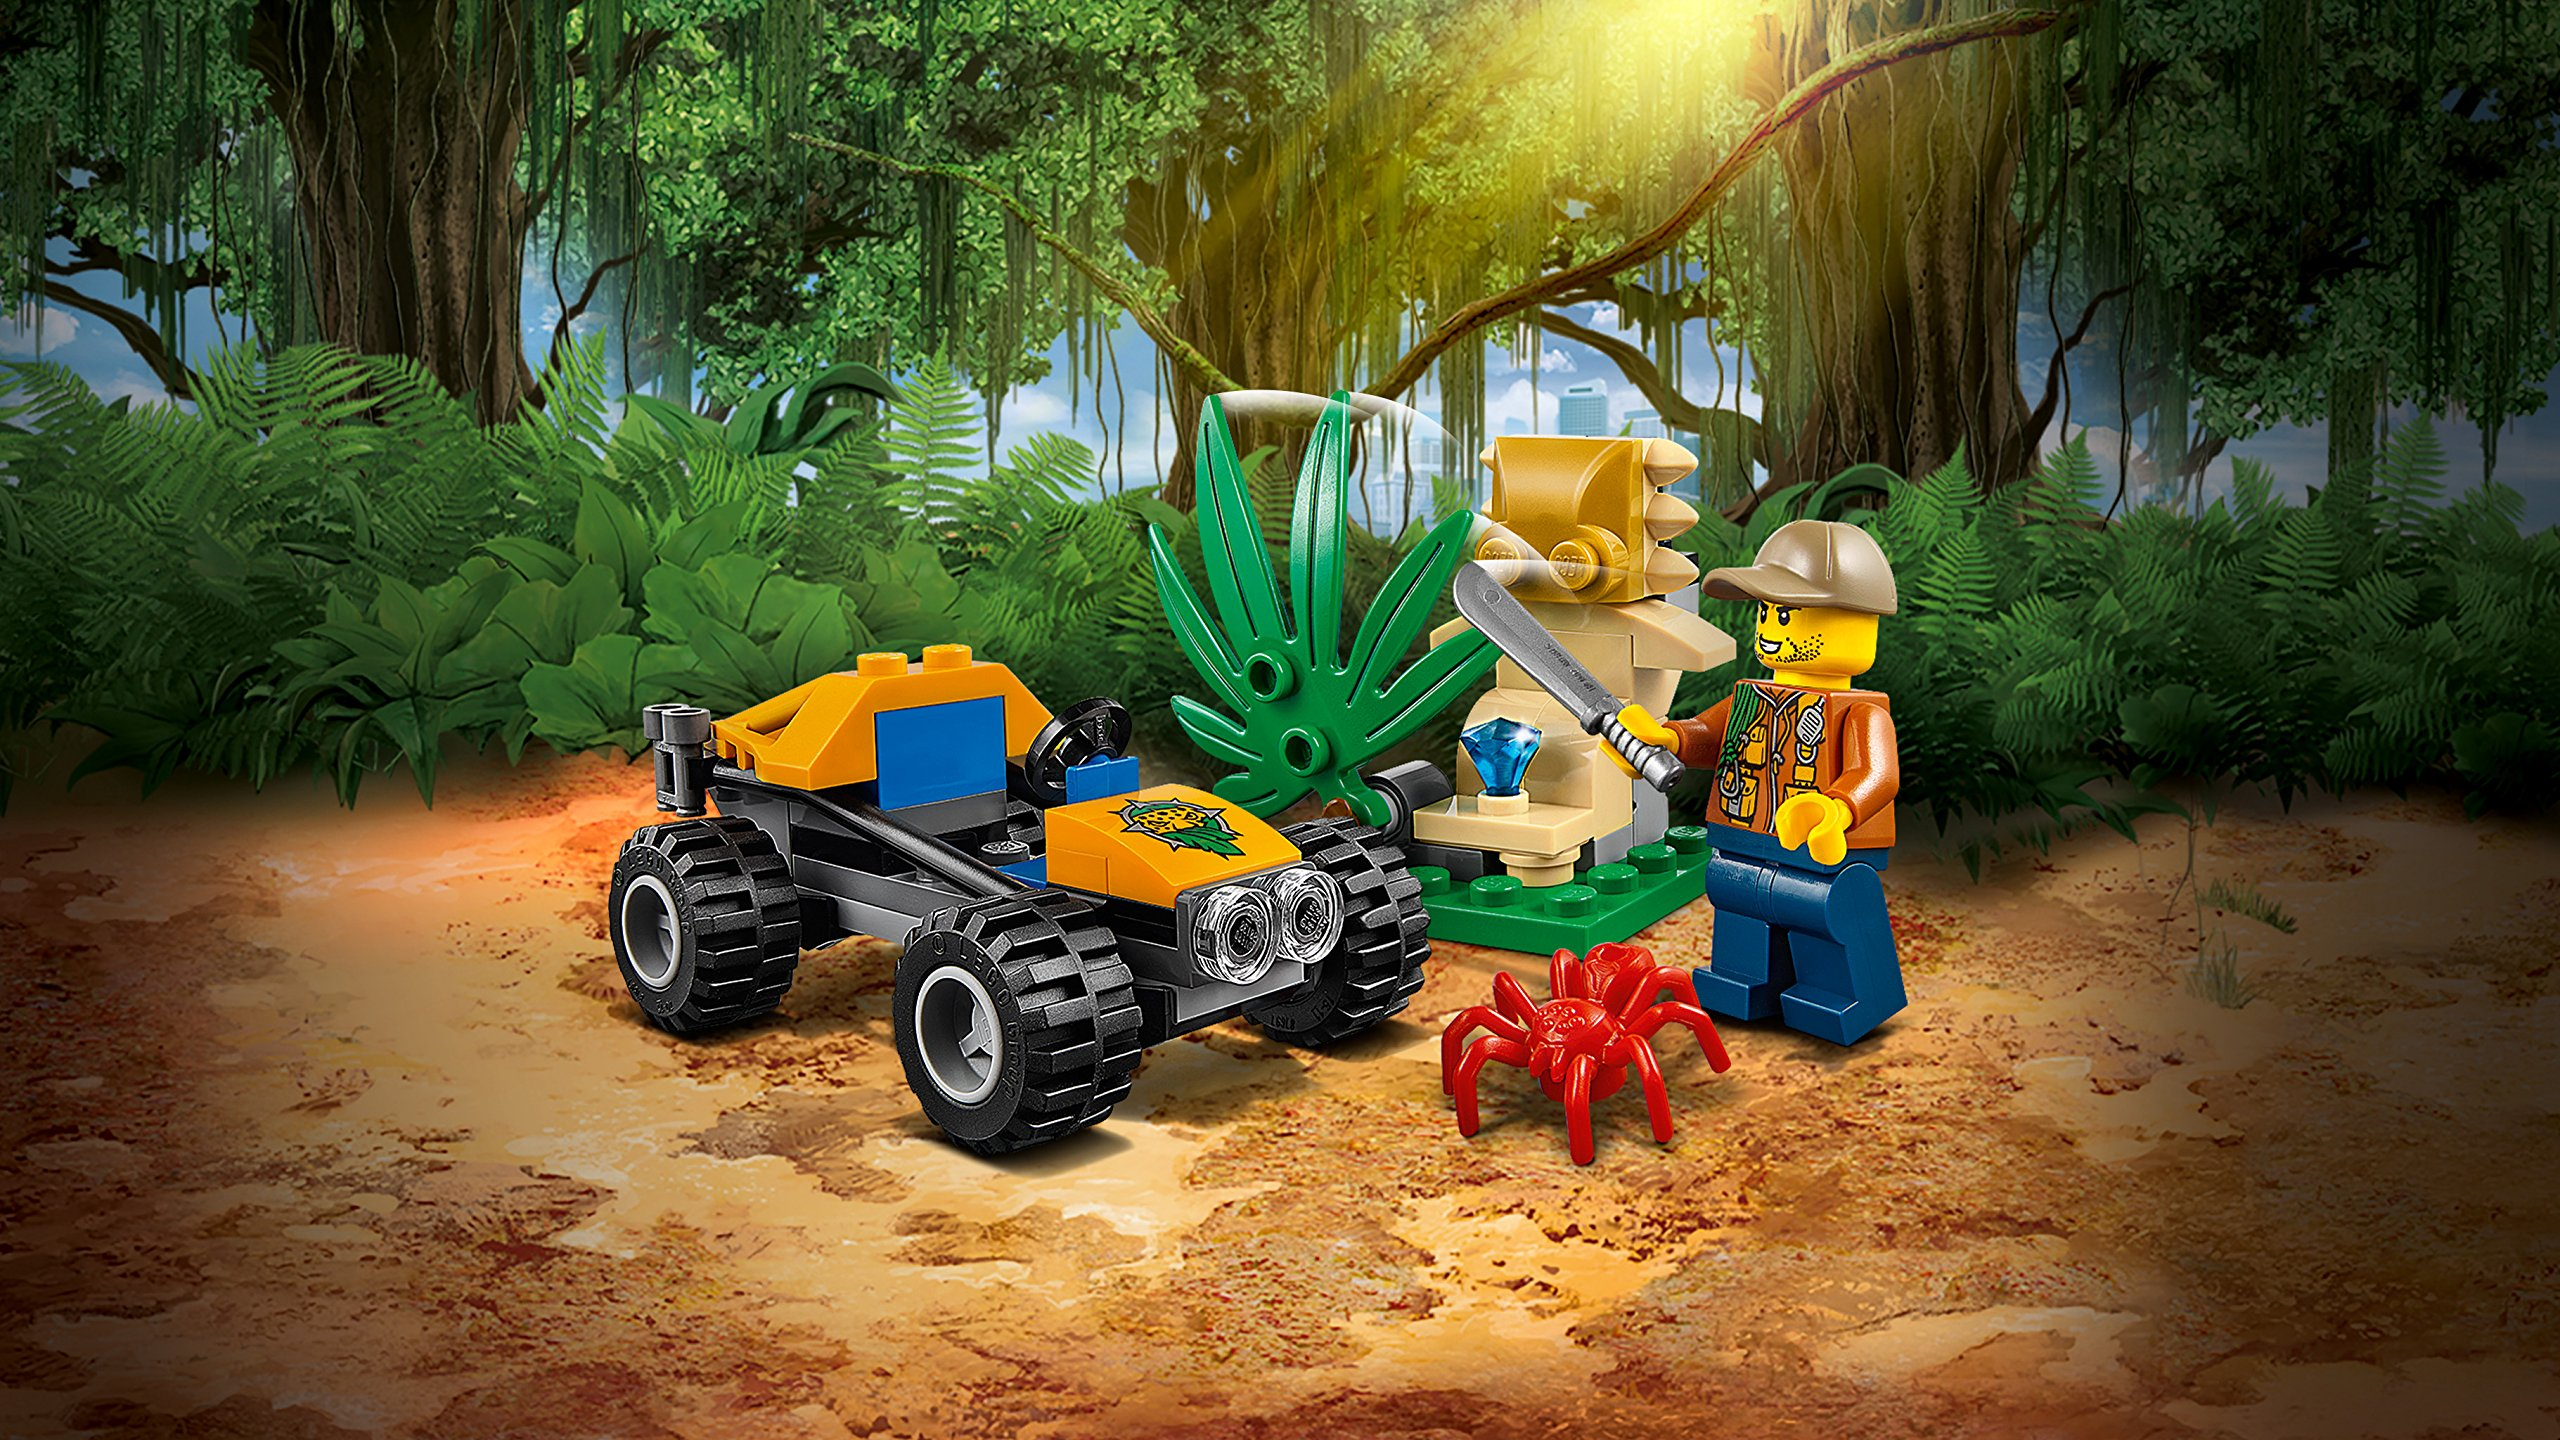 LEGO-60156-City-Jungle-Explorers-Buggy-della-giungla